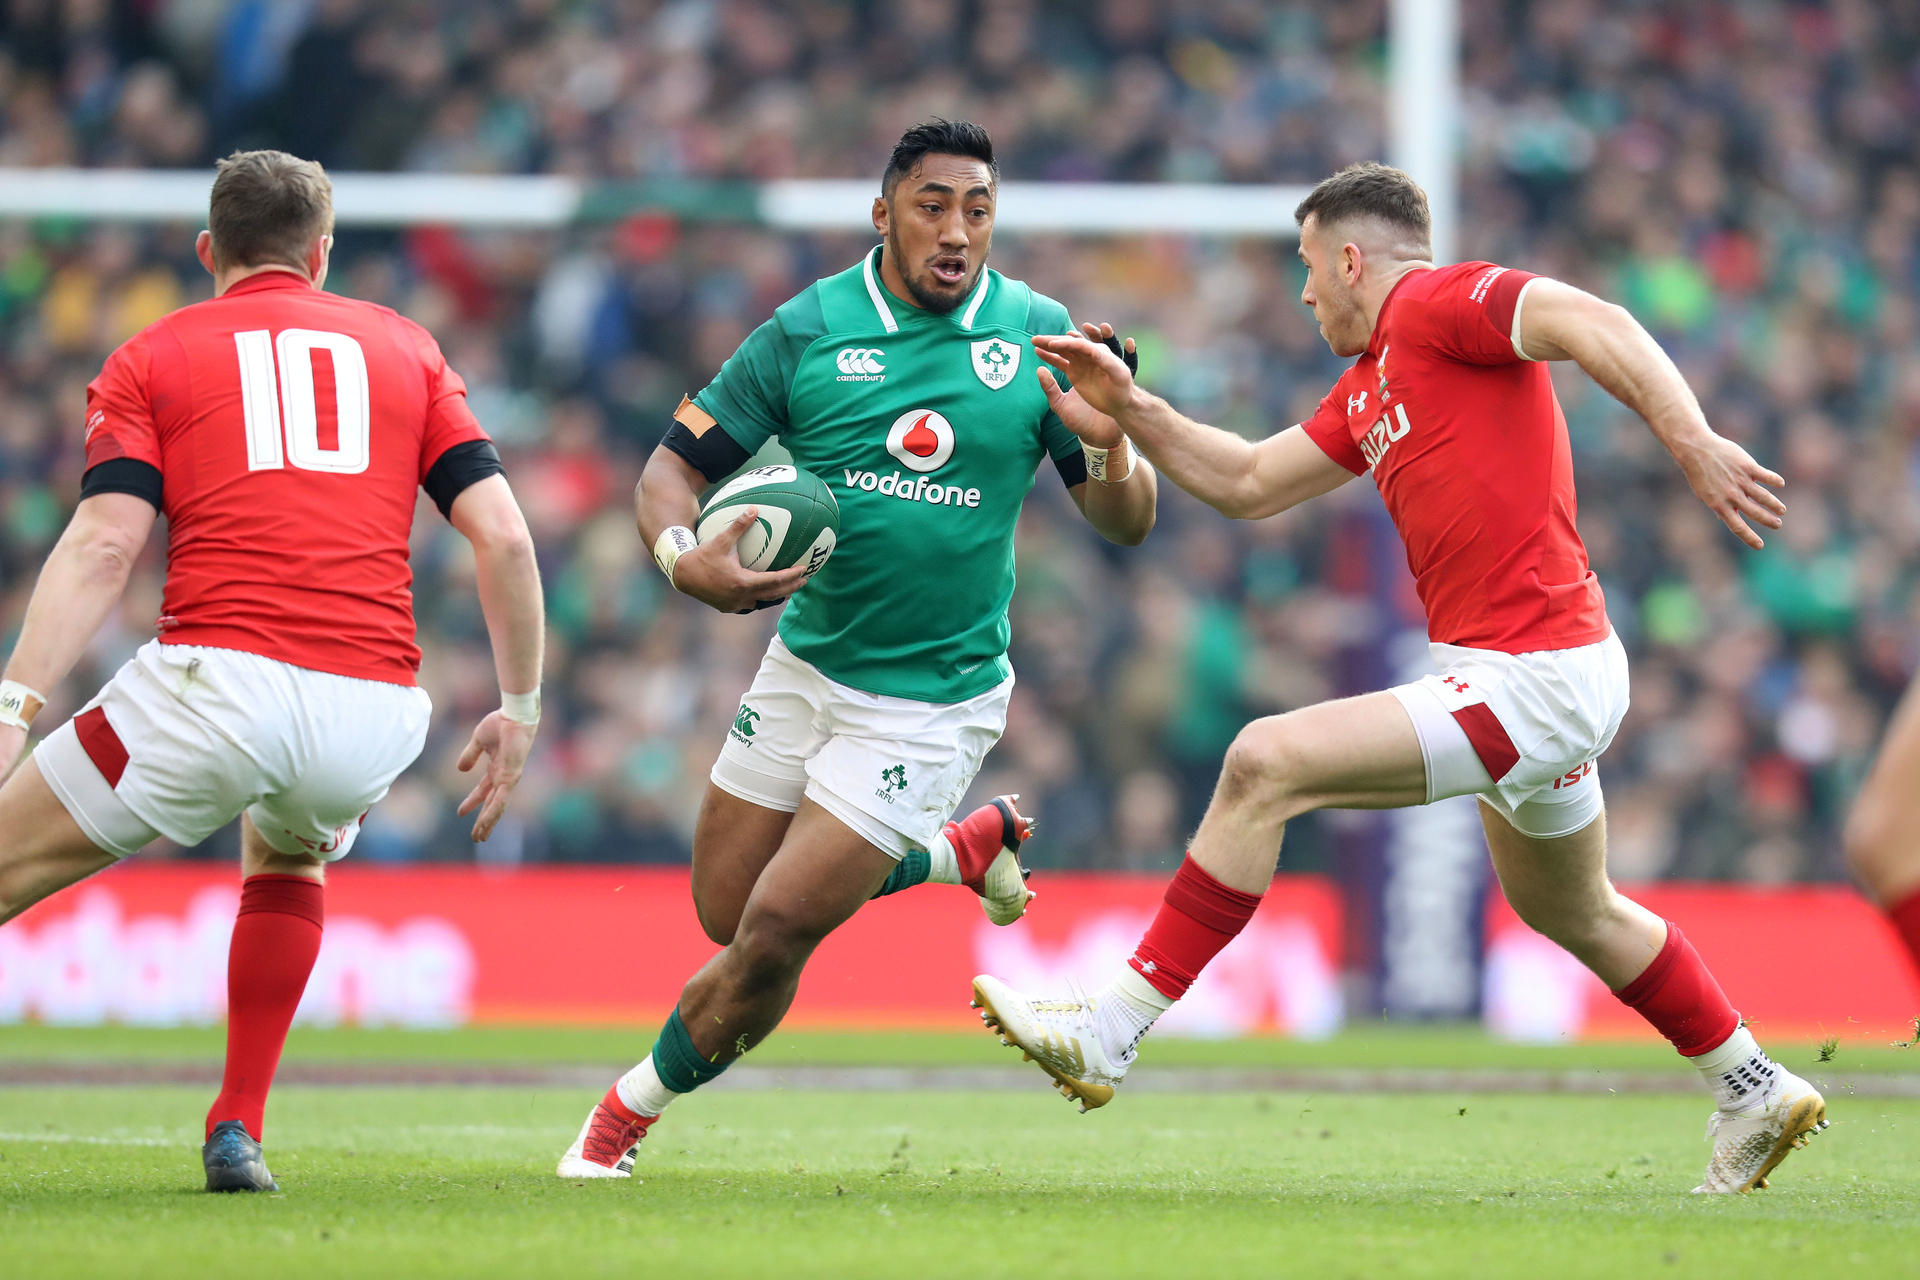 Live rugby updates: Six Nations - Wales v Ireland